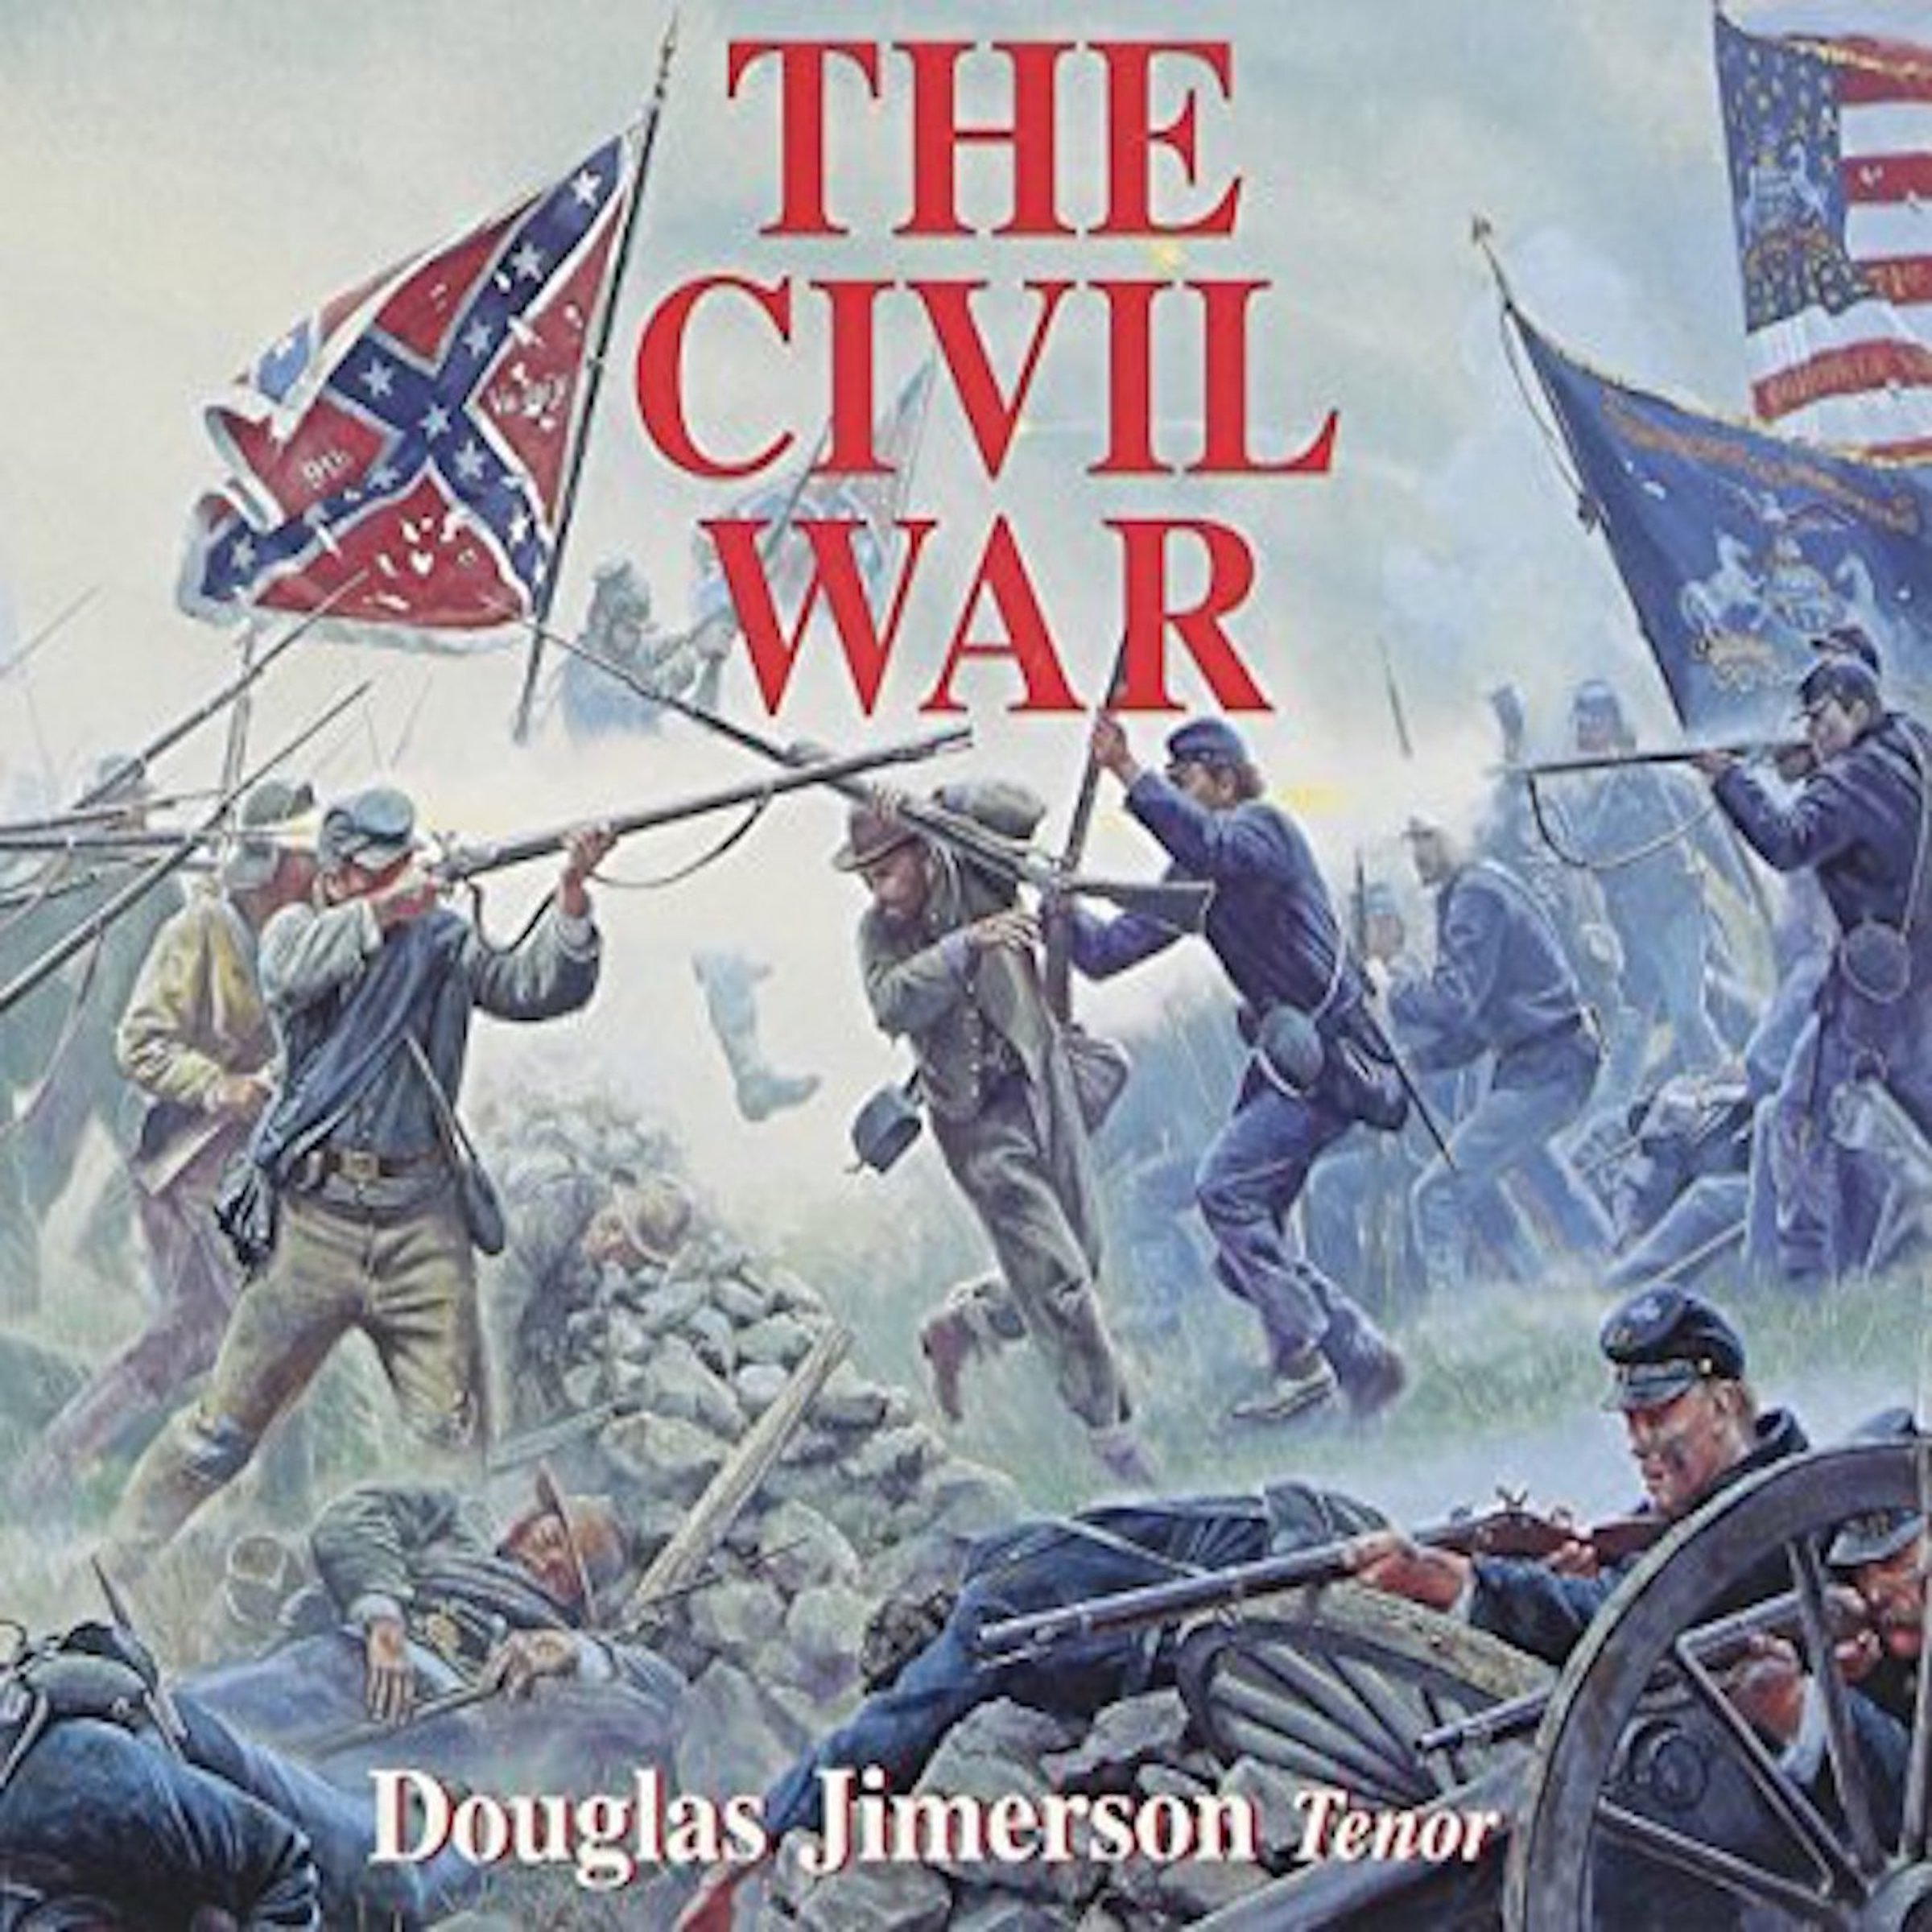 The Civil War by AMERIMUSIC